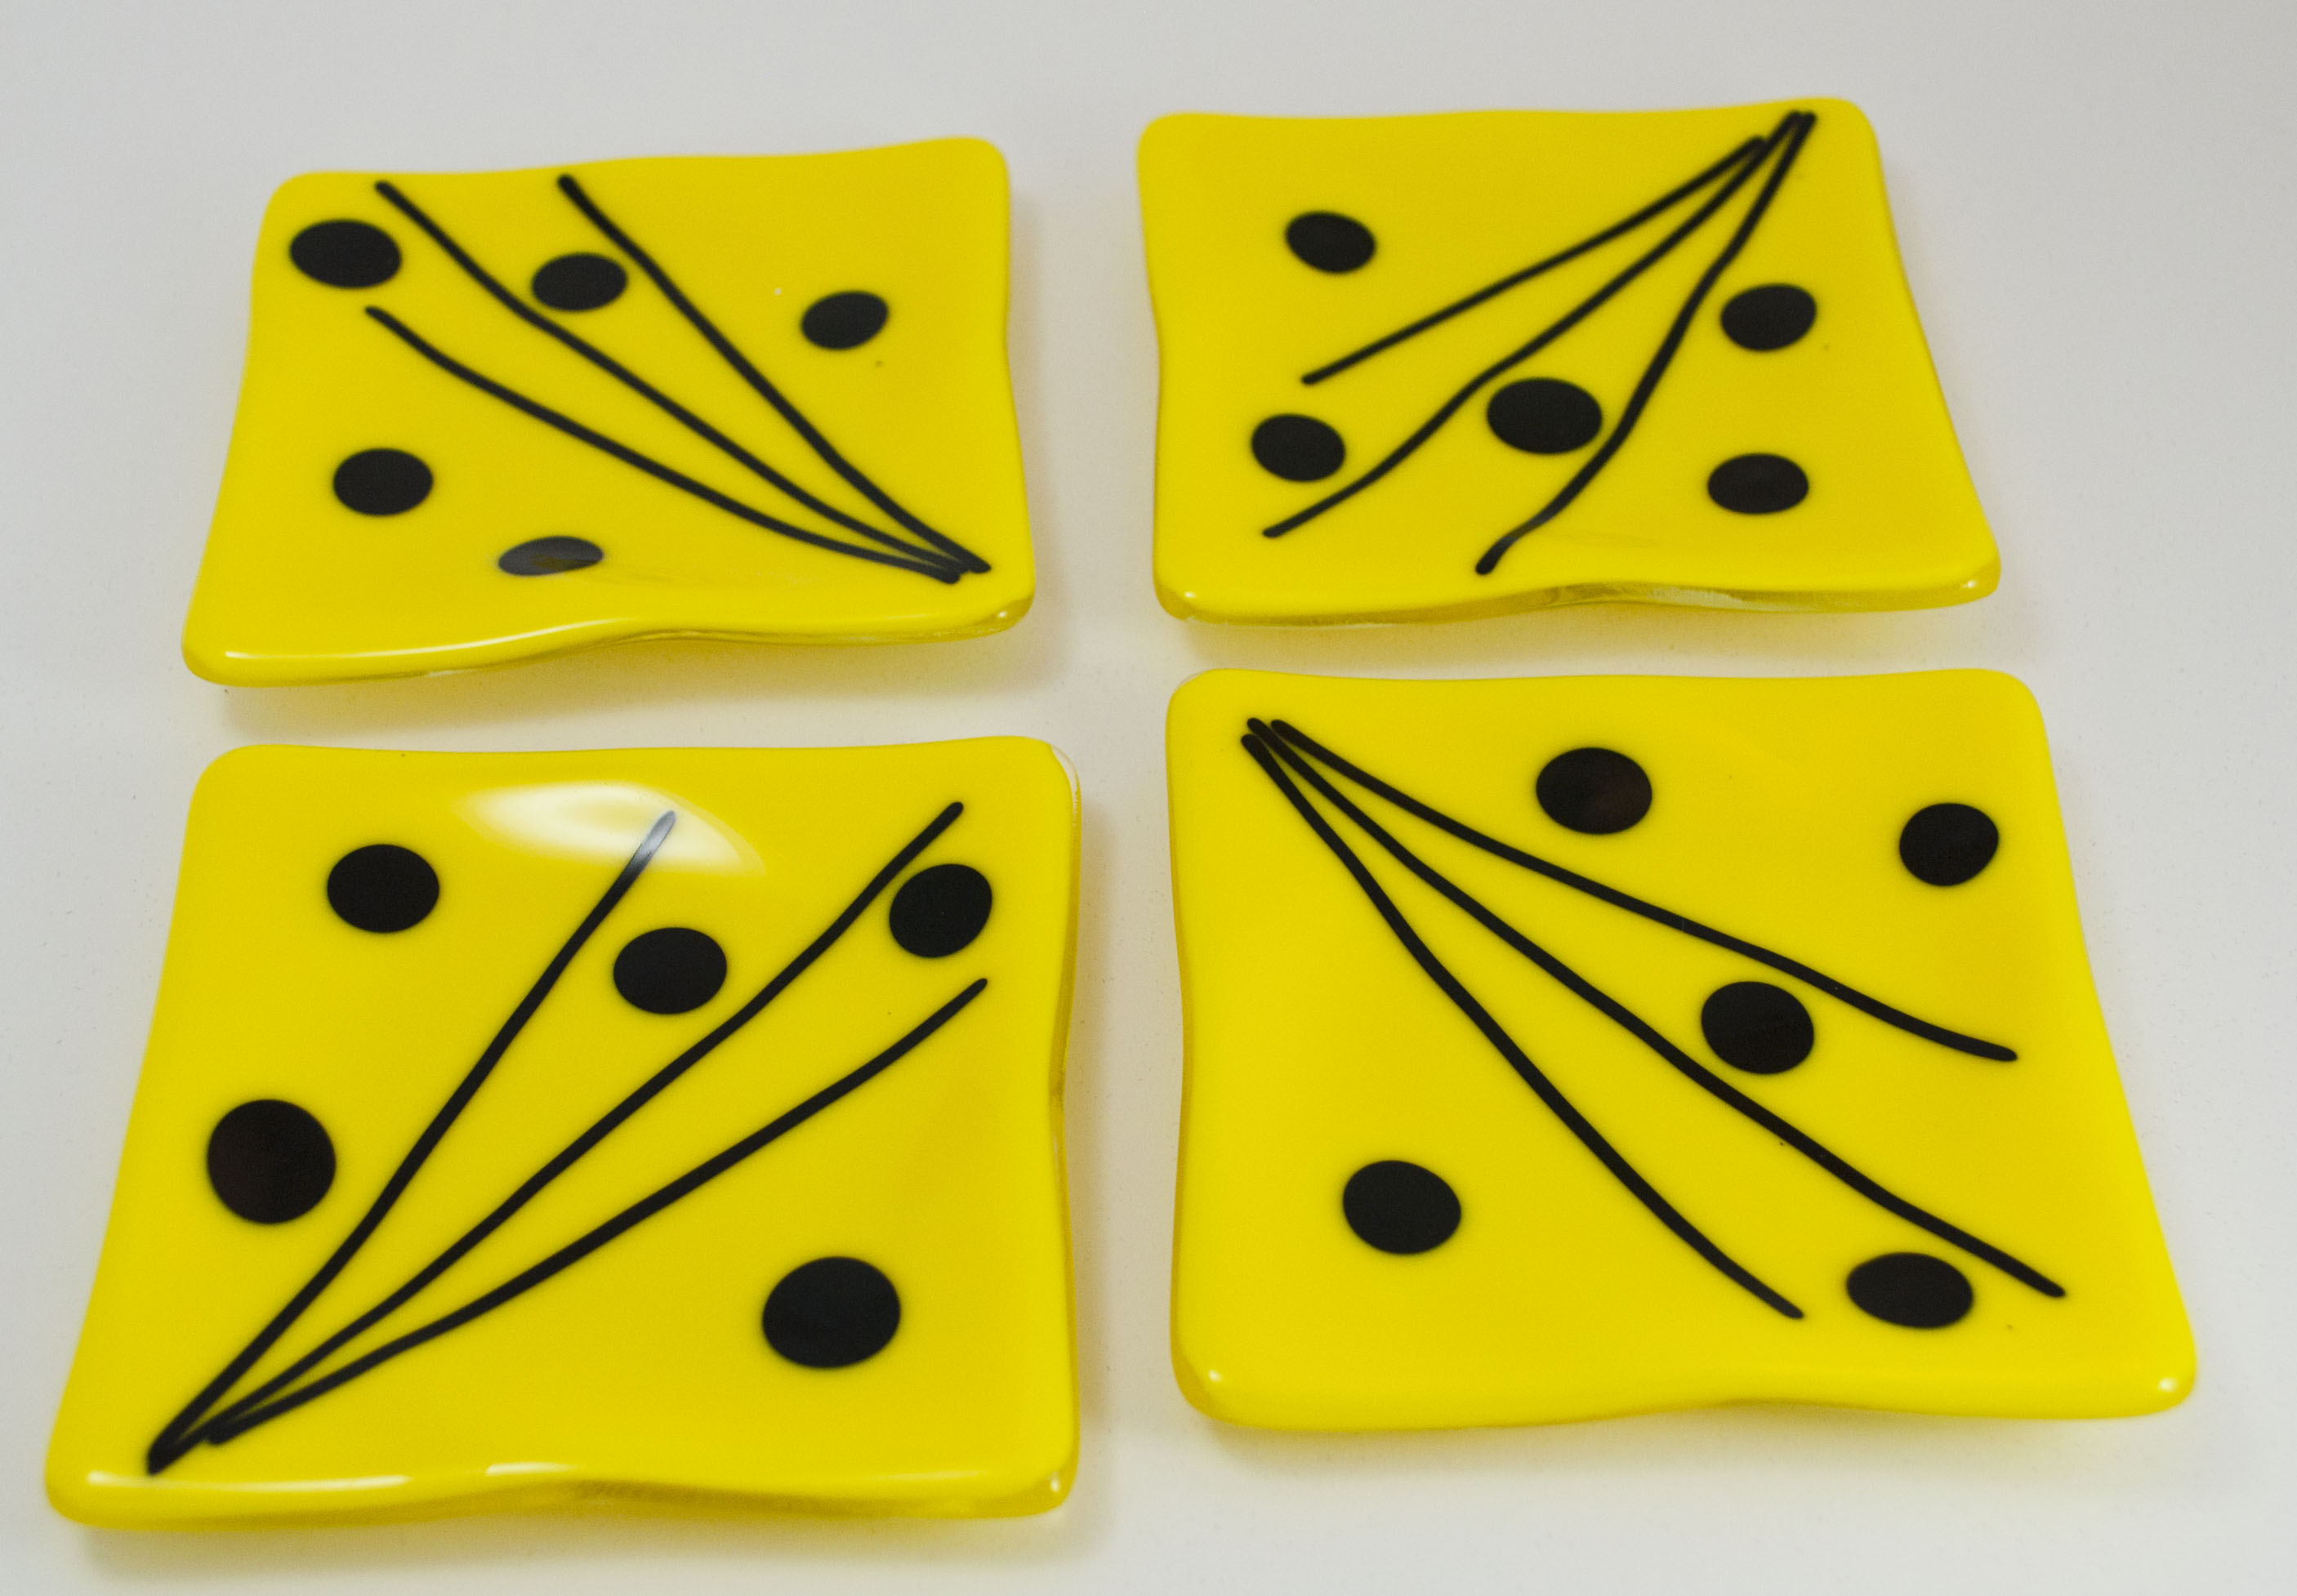 Yellow with black dots coasters